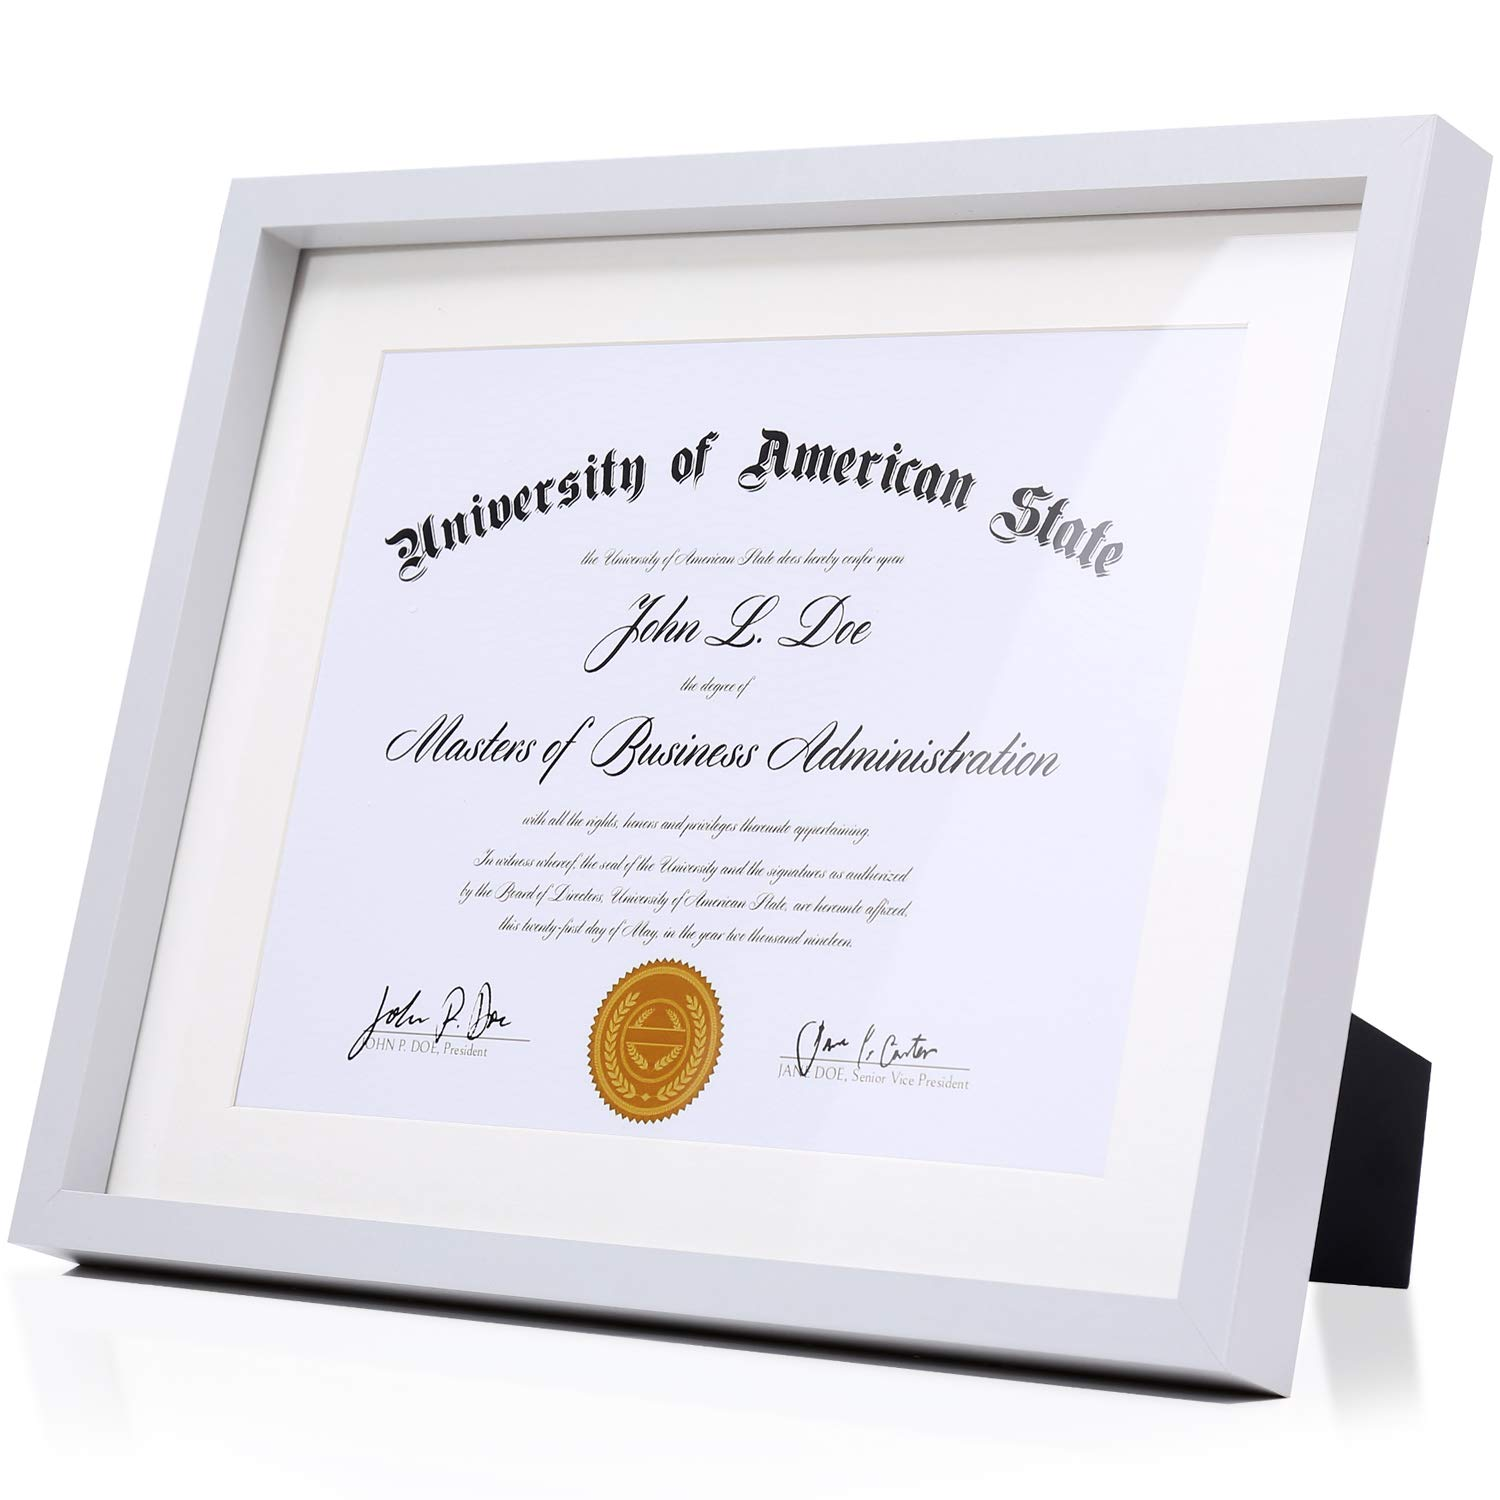 Modern Grey Diploma Frame Solid Wood 11x14 with Adhesive Wall Hooks, Nail Hooks, 2 White Mats Sized: 8.5x11 or 8x10 for Documents, Degrees, Certificate, Photo, Pictures, Certification, Tempered Glass by frames co.